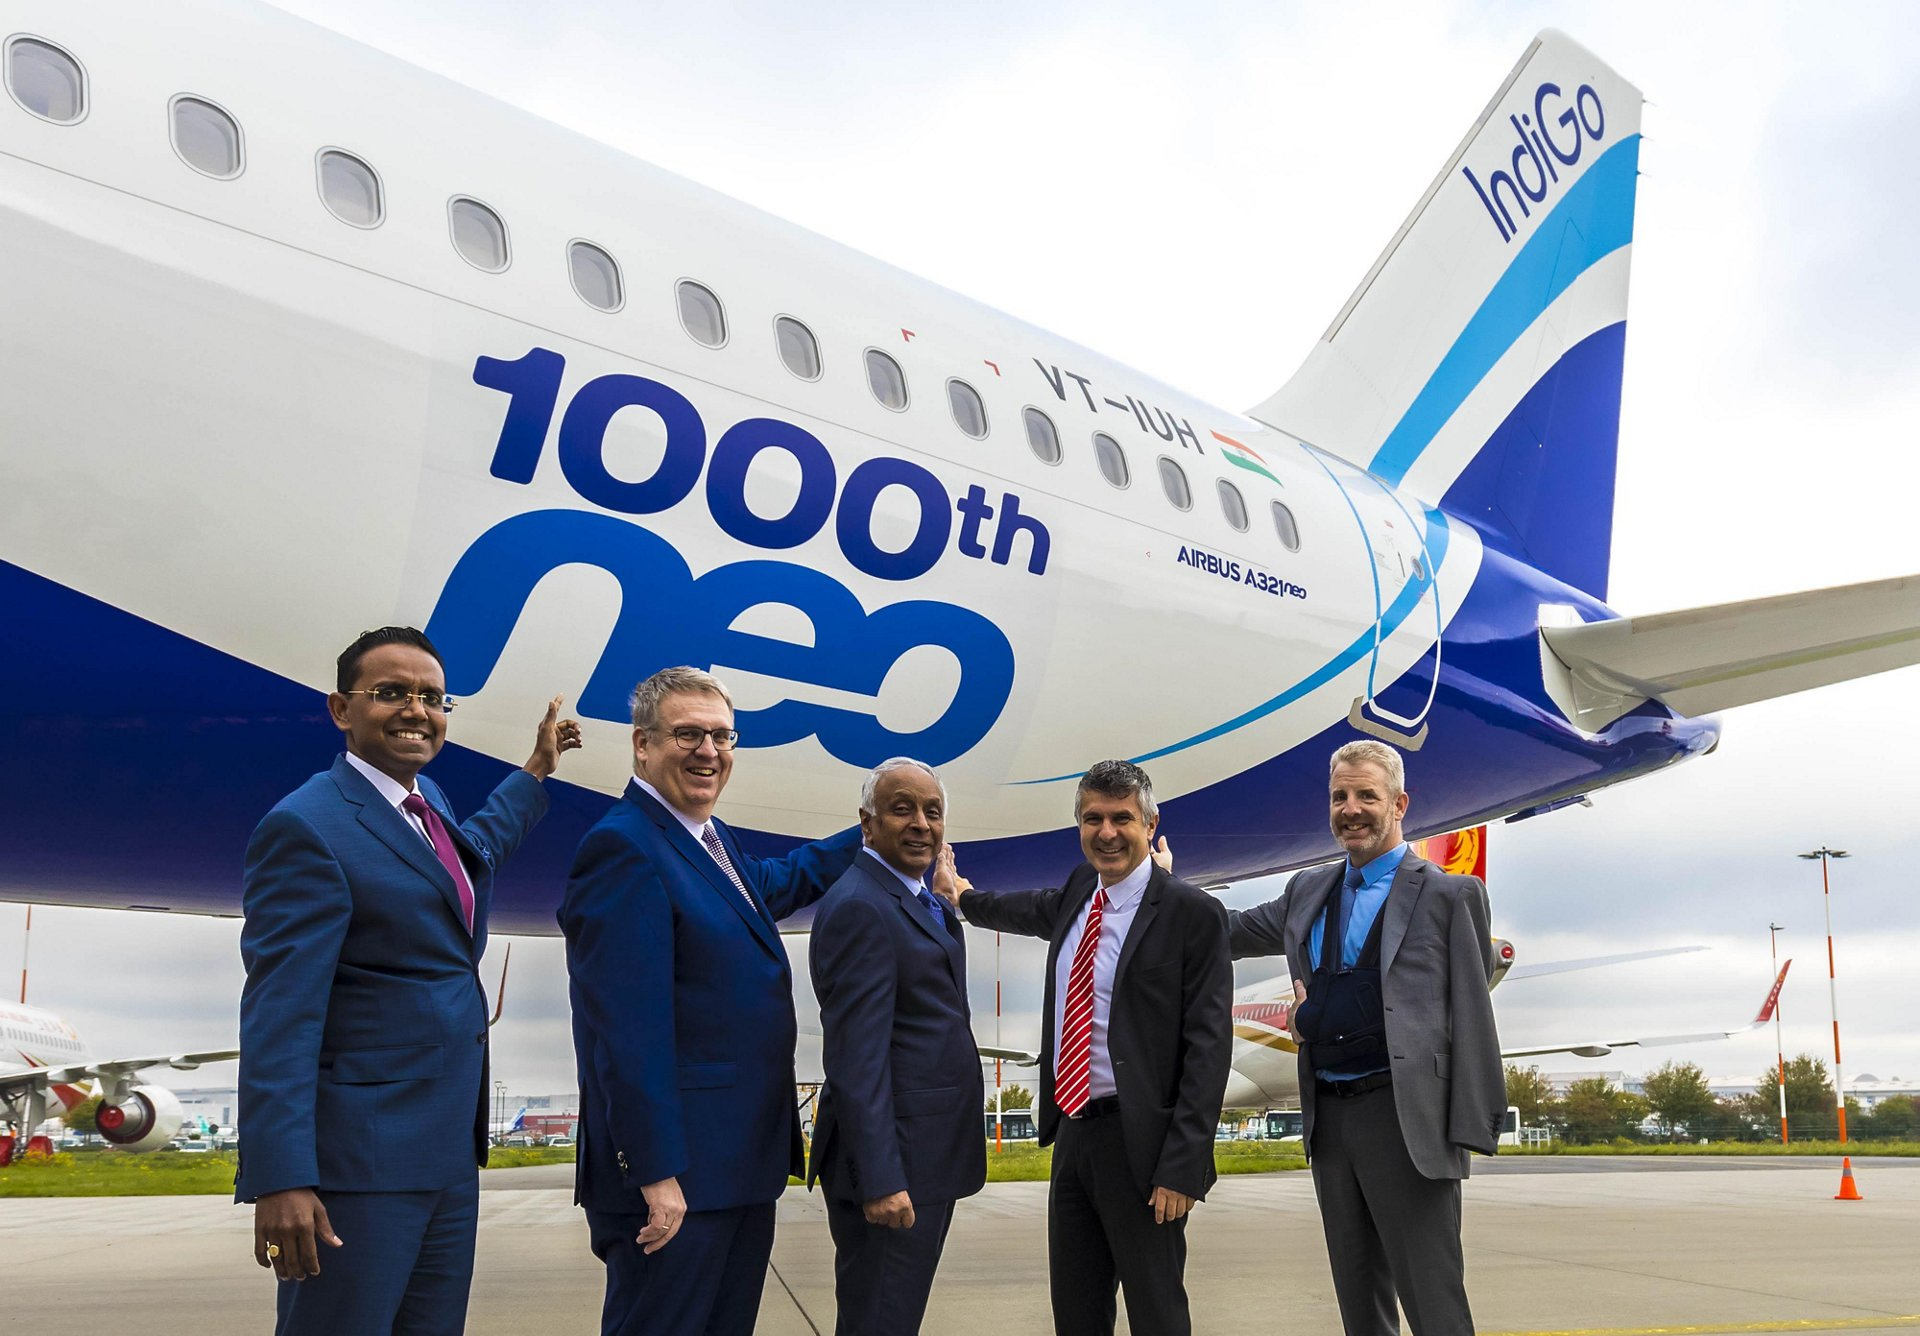 Anand Stanley, Head of Airbus India and South Asia, Airbus / Michael Menking, Head of A320 Family Programme, Airbus / Rono Dutta, Chief Executive Officer, IndiGo / Chadi Saade, Head of Sales India, Airbus / Michael Culhane, Senior Vice President New Aircraft, CDB Aviation Lease Finance